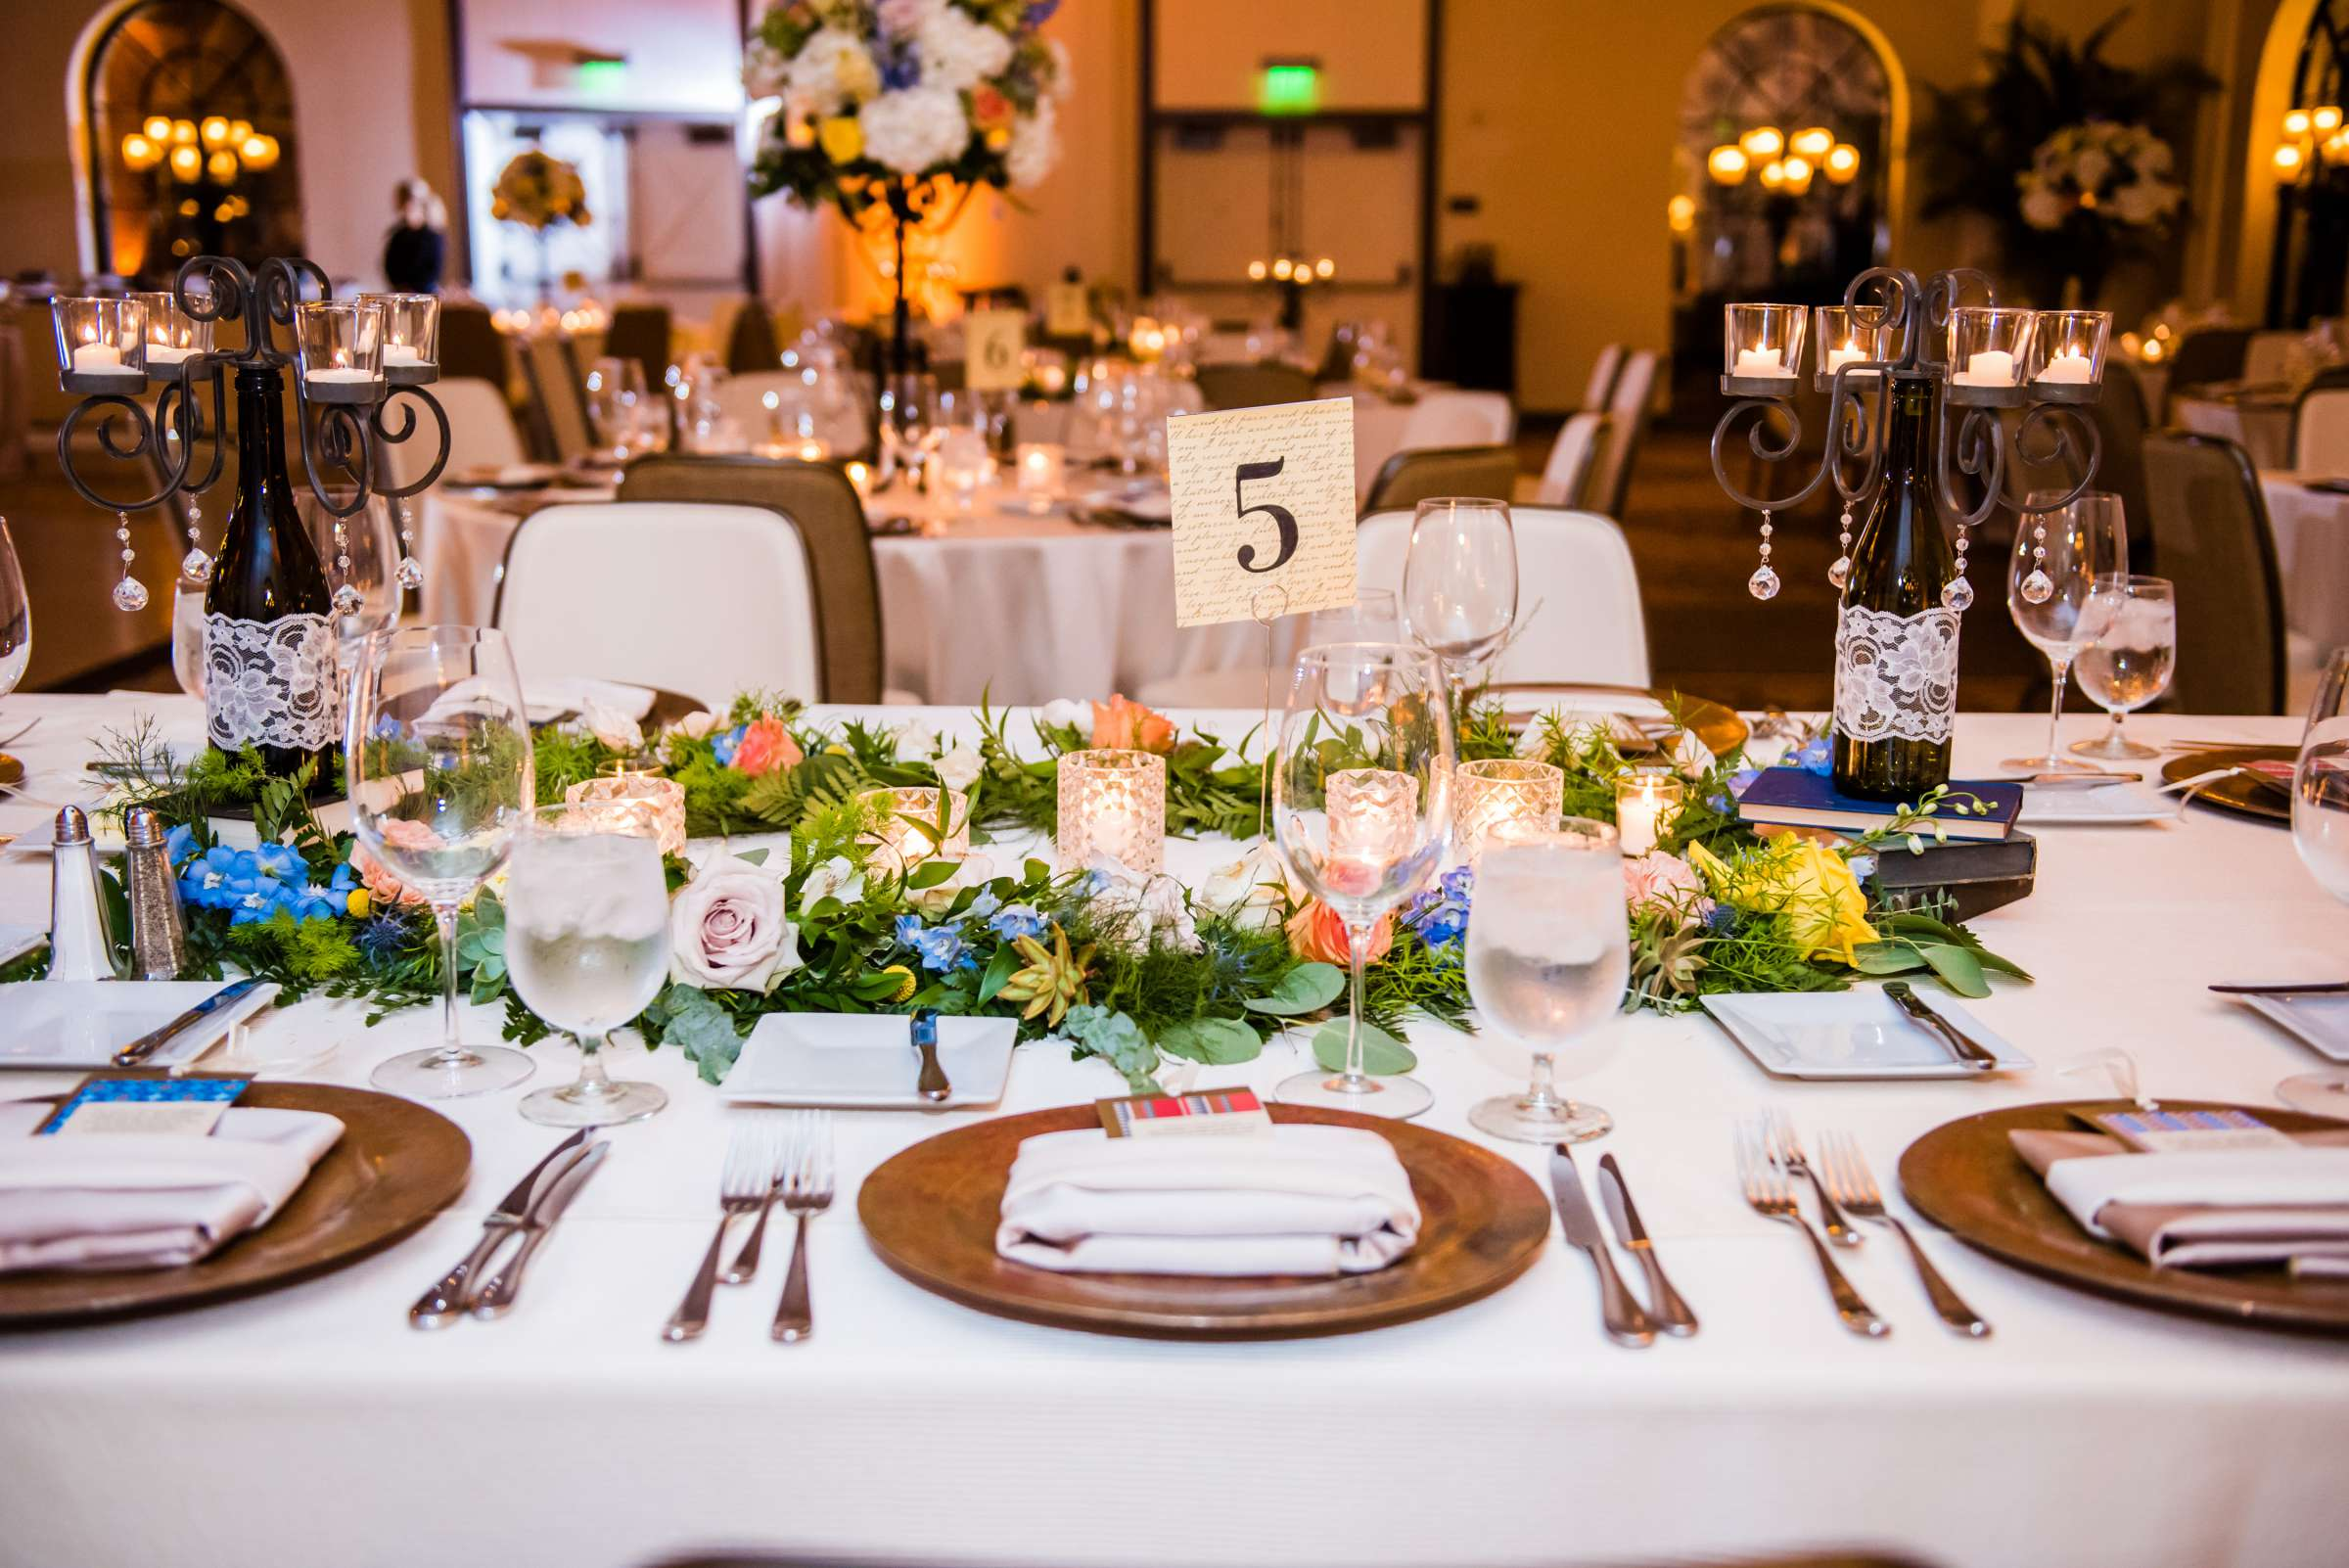 Estancia Wedding coordinated by Hannah Smith Events, Jaclyn and Brandon Wedding Photo #150 by True Photography